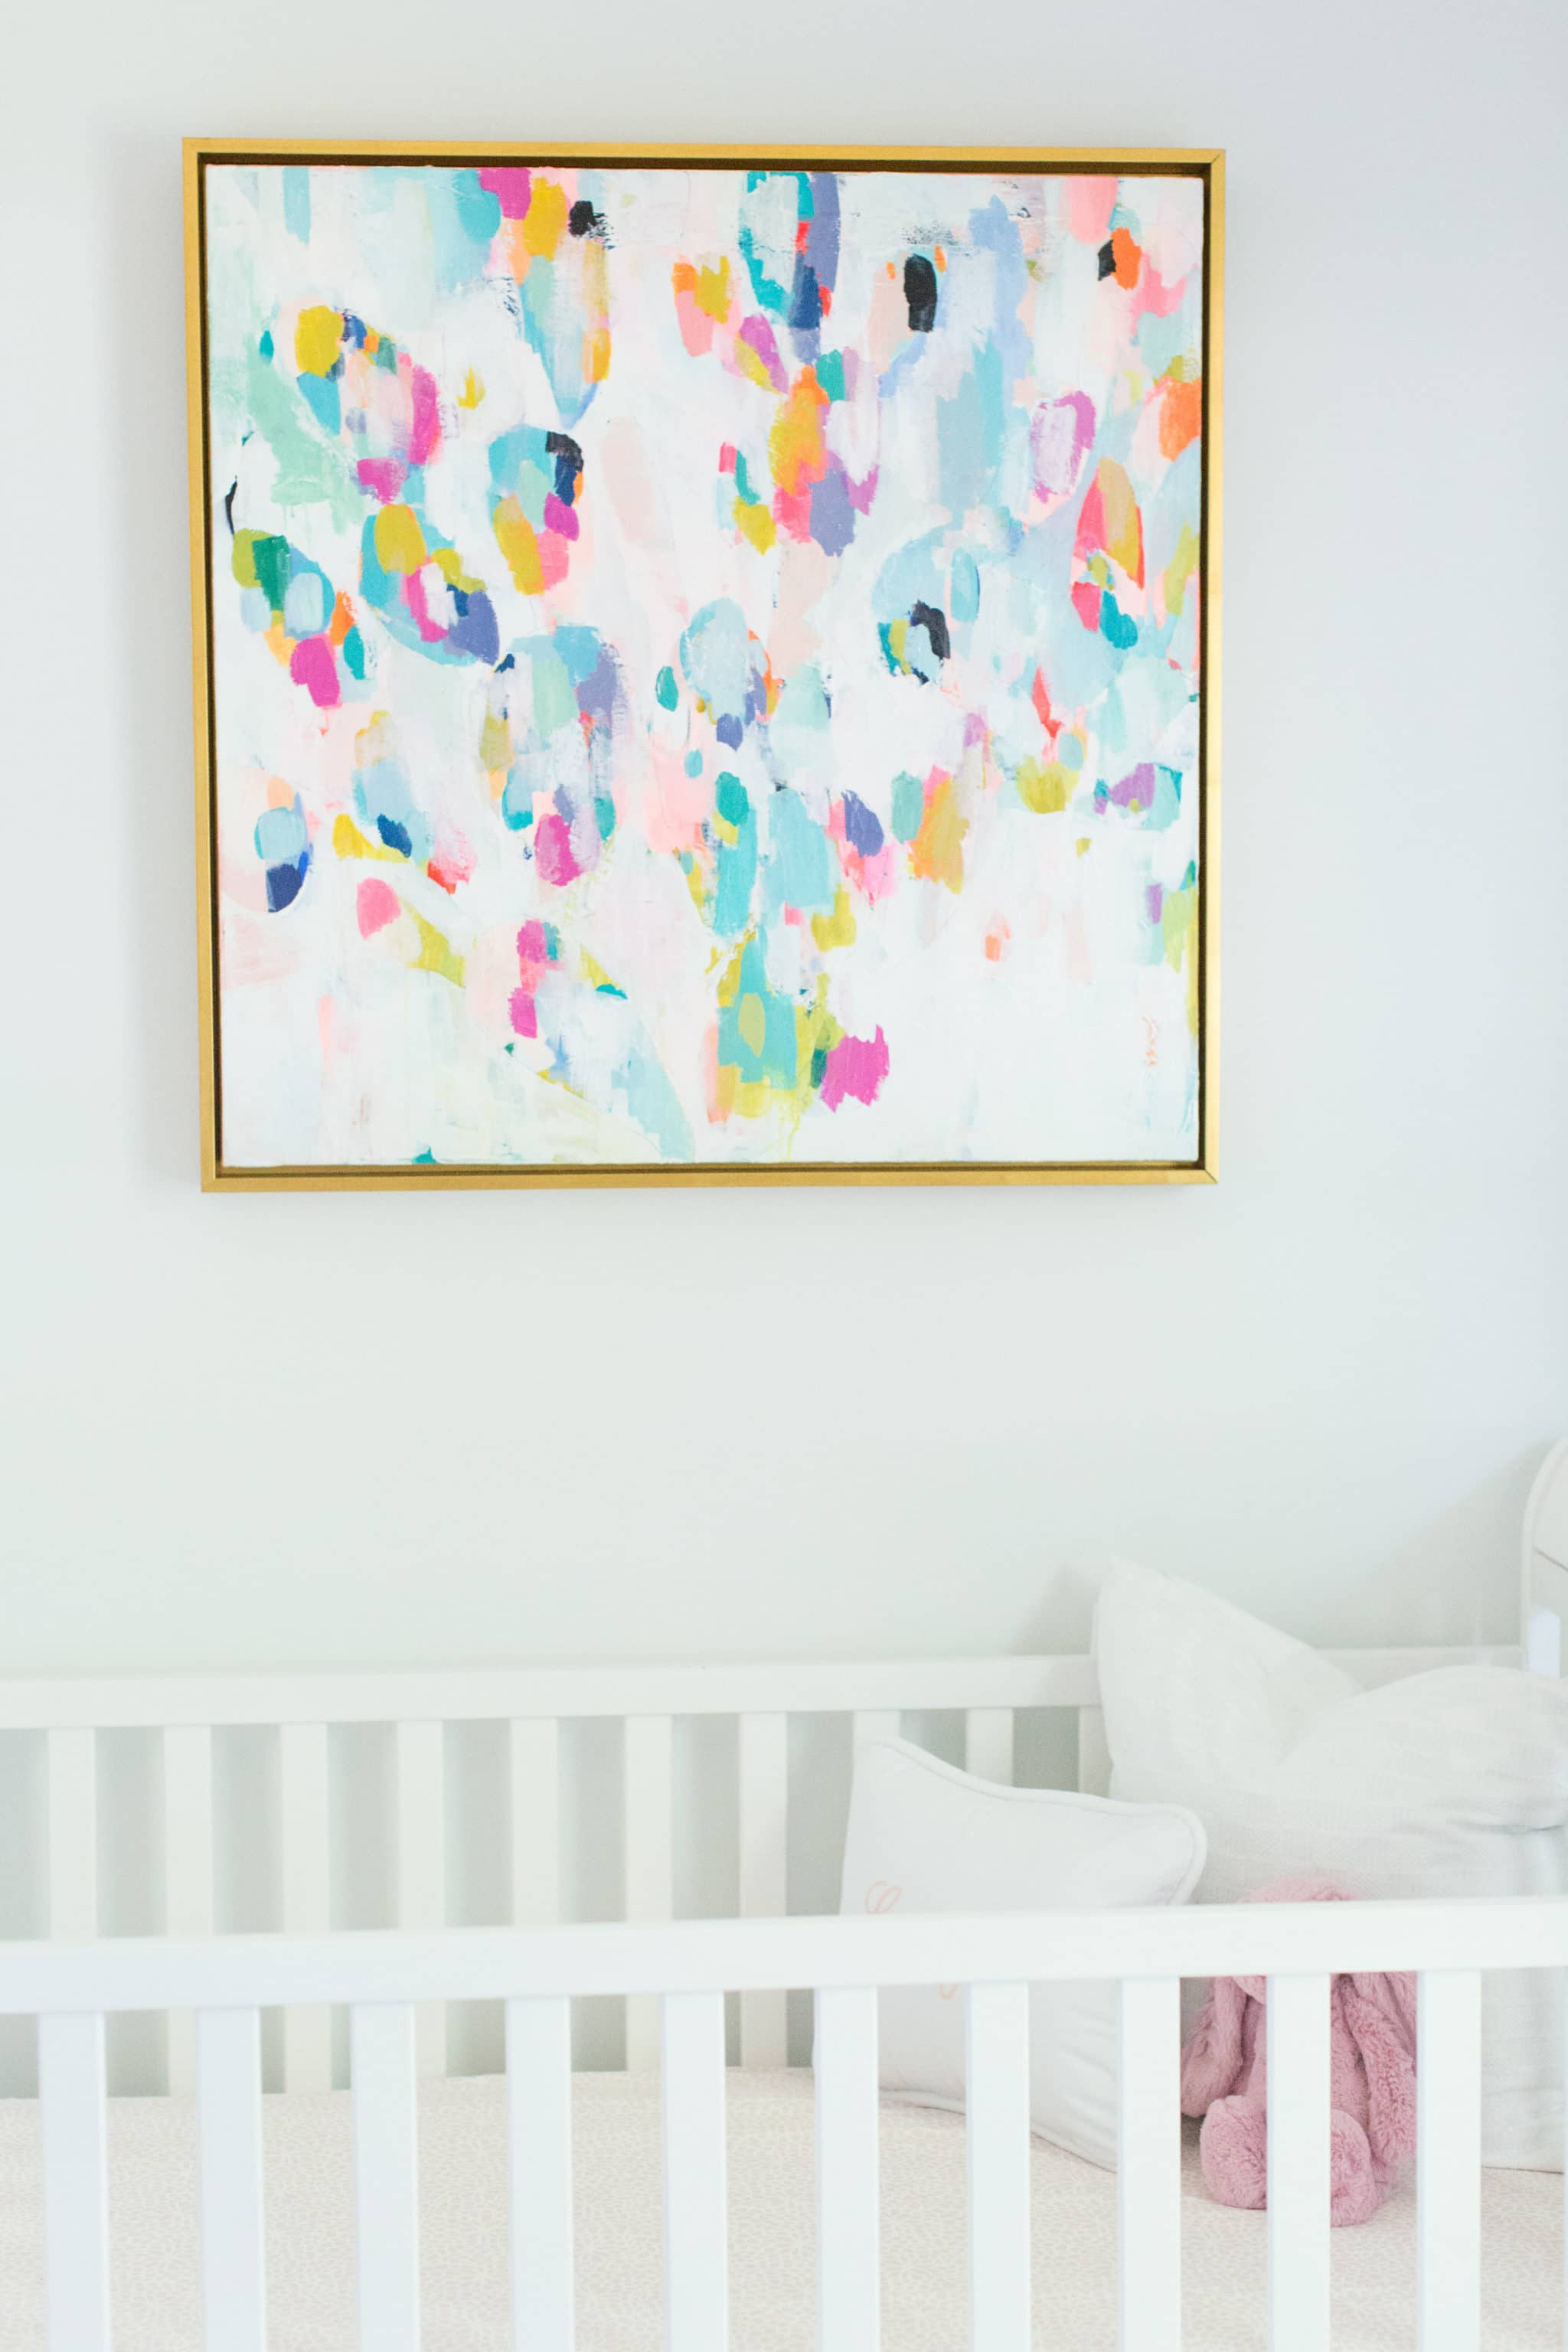 Abstract Painting in Nursery - Project Nursery